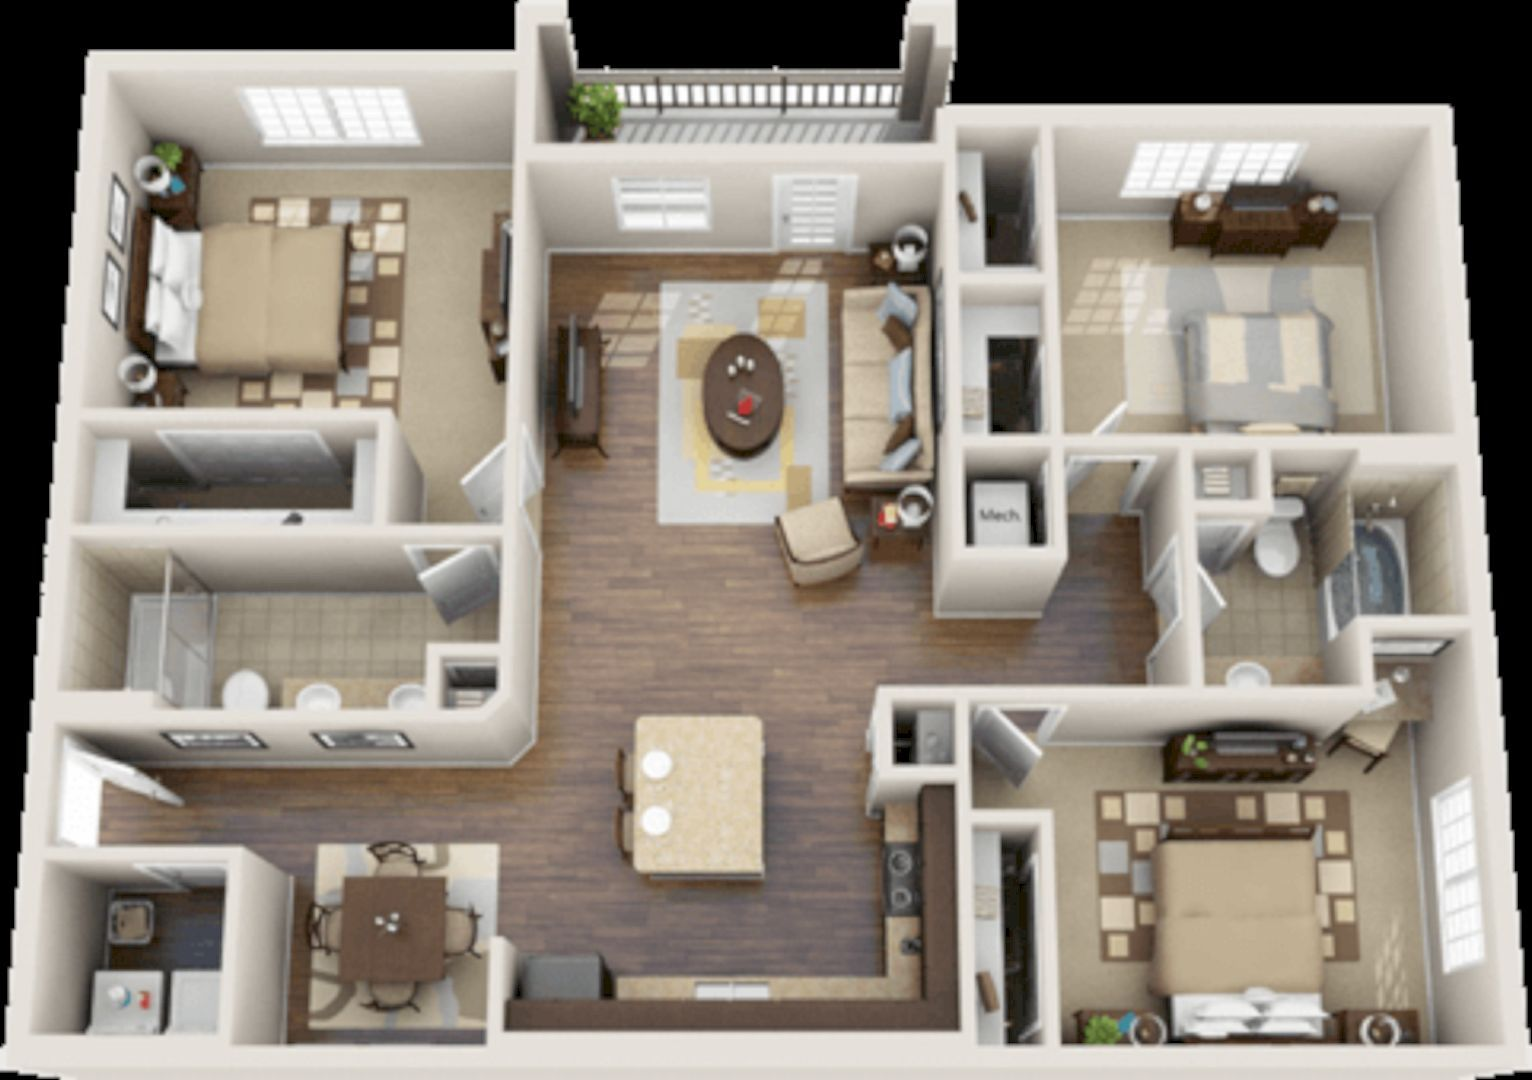 Why Do We Need 3d House Plan Before Starting The Project Apartment Layout Bedroom House Plans Apartment Floor Plans